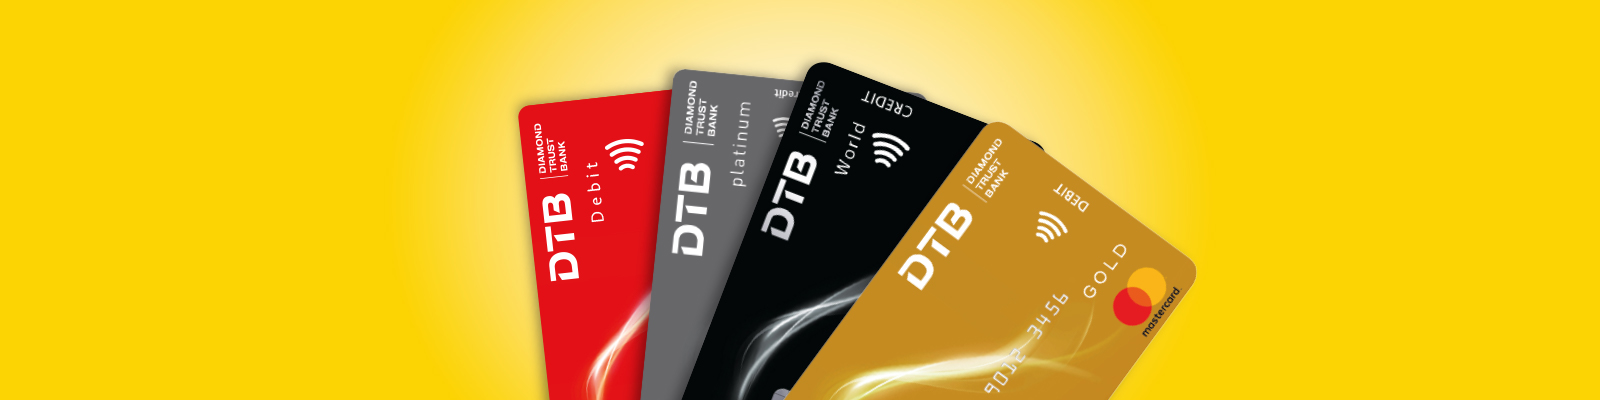 /cards/credit-card